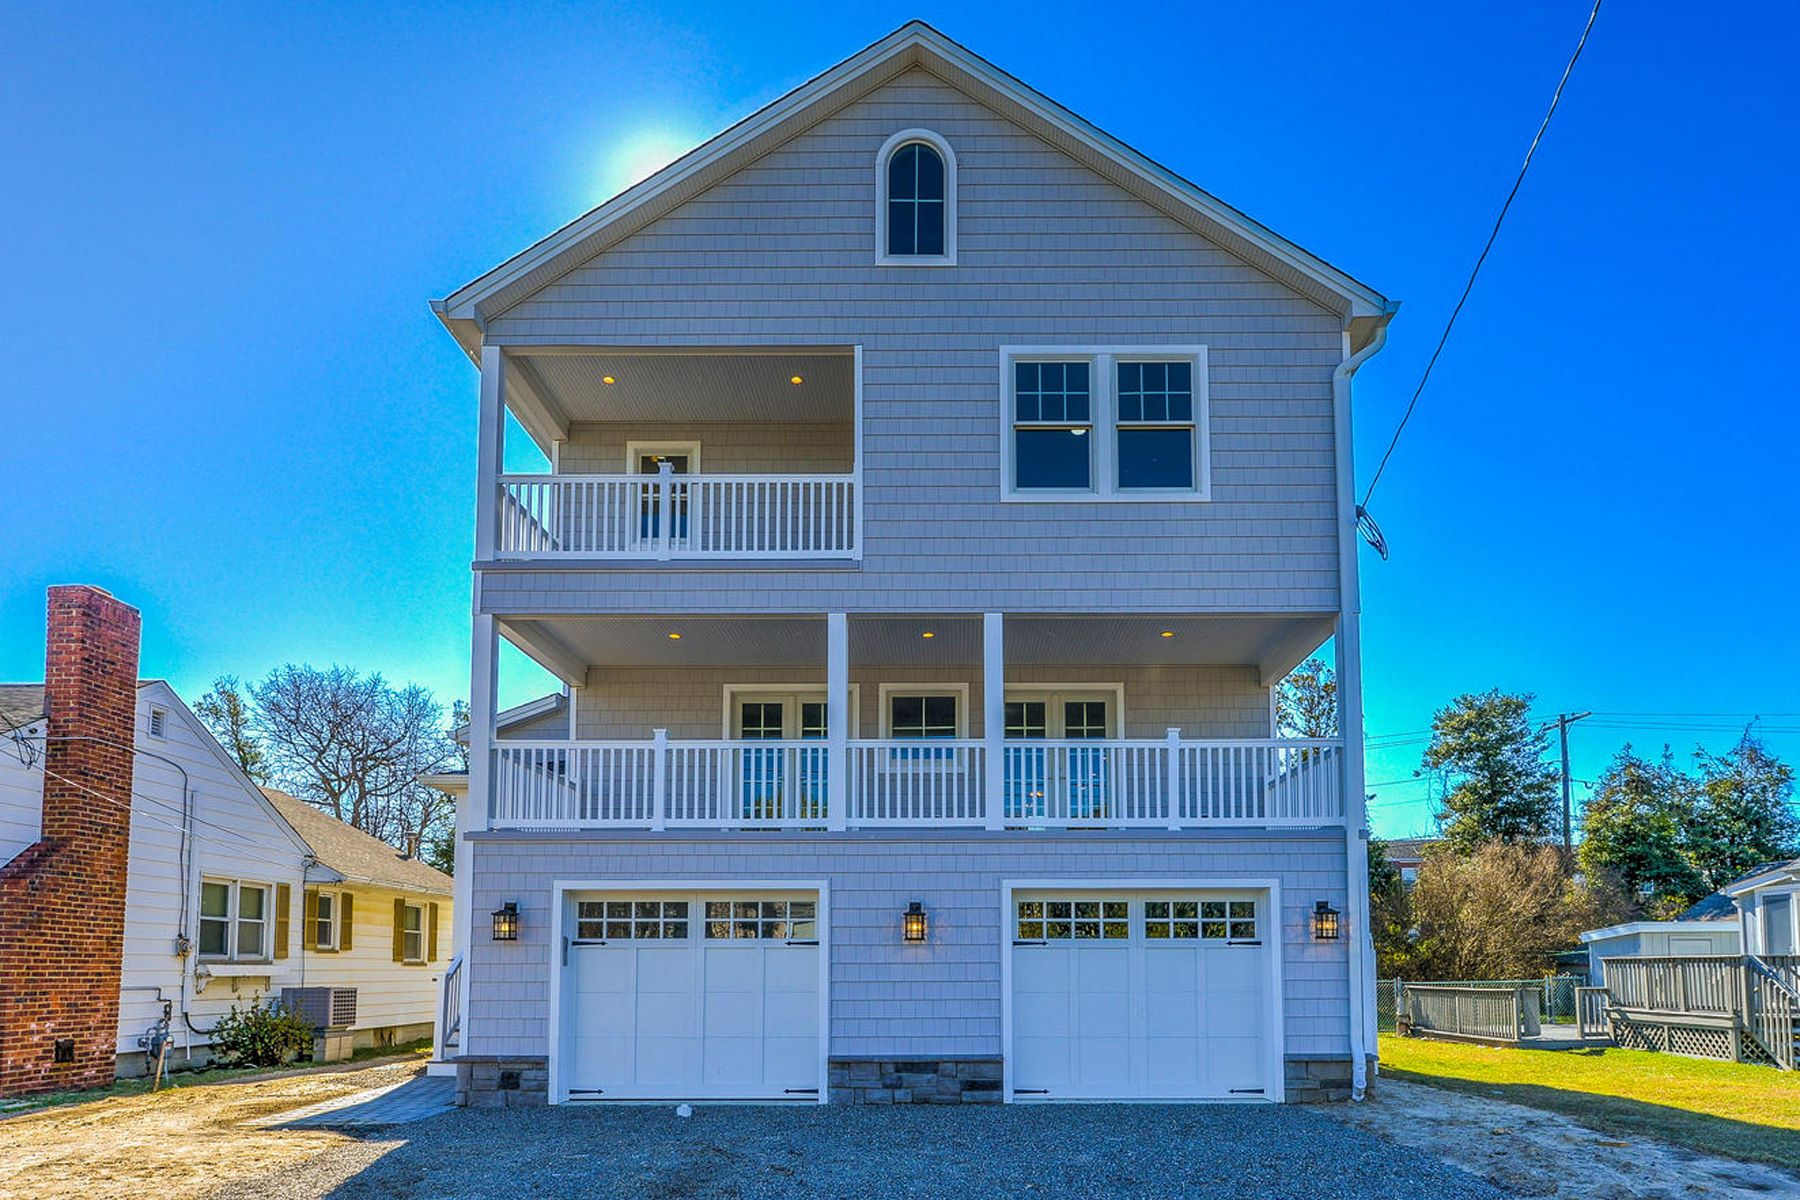 Casa Unifamiliar por un Venta en Presenting Coastal Charm At It's Finest 306 Carter Avenue Point Pleasant Beach, Nueva Jersey 08742 Estados Unidos